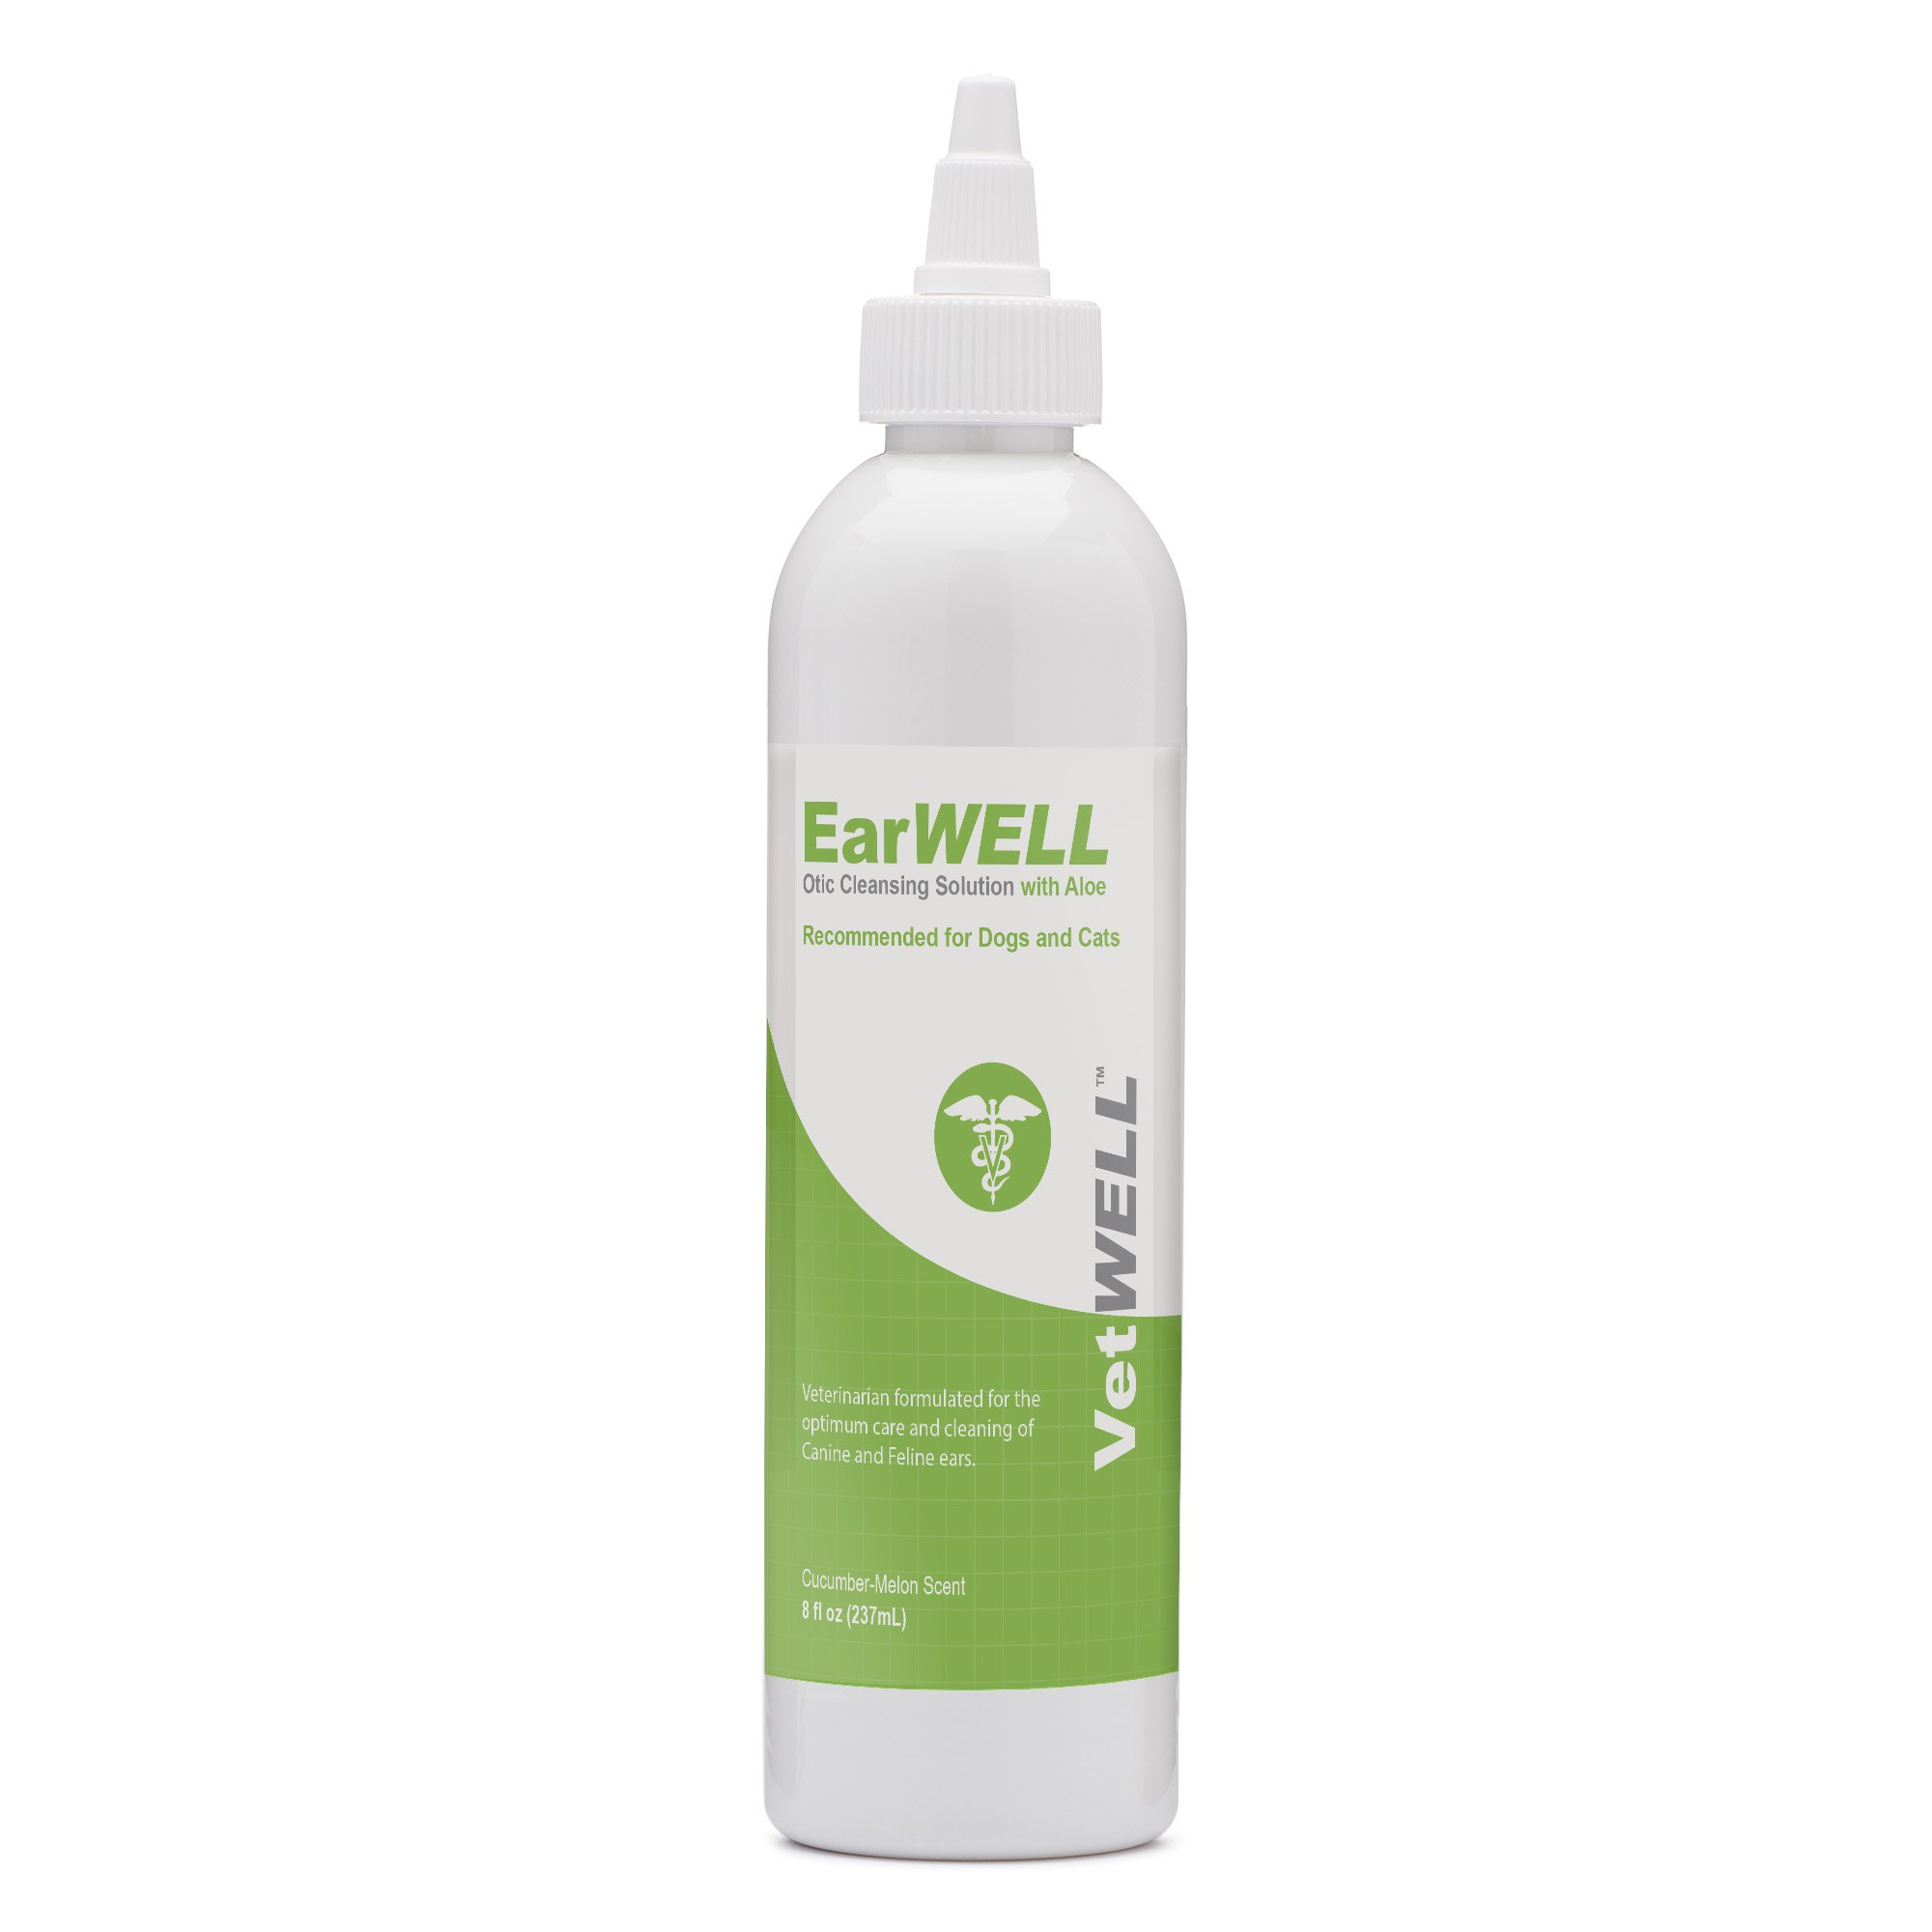 VetWELL Ear Cleaner for Dogs and Cats - Otic Rinse for Infections and Controlling Yeast, Mites and Odor in Pets - 8 oz (Cucumber Melon) by VetWELL